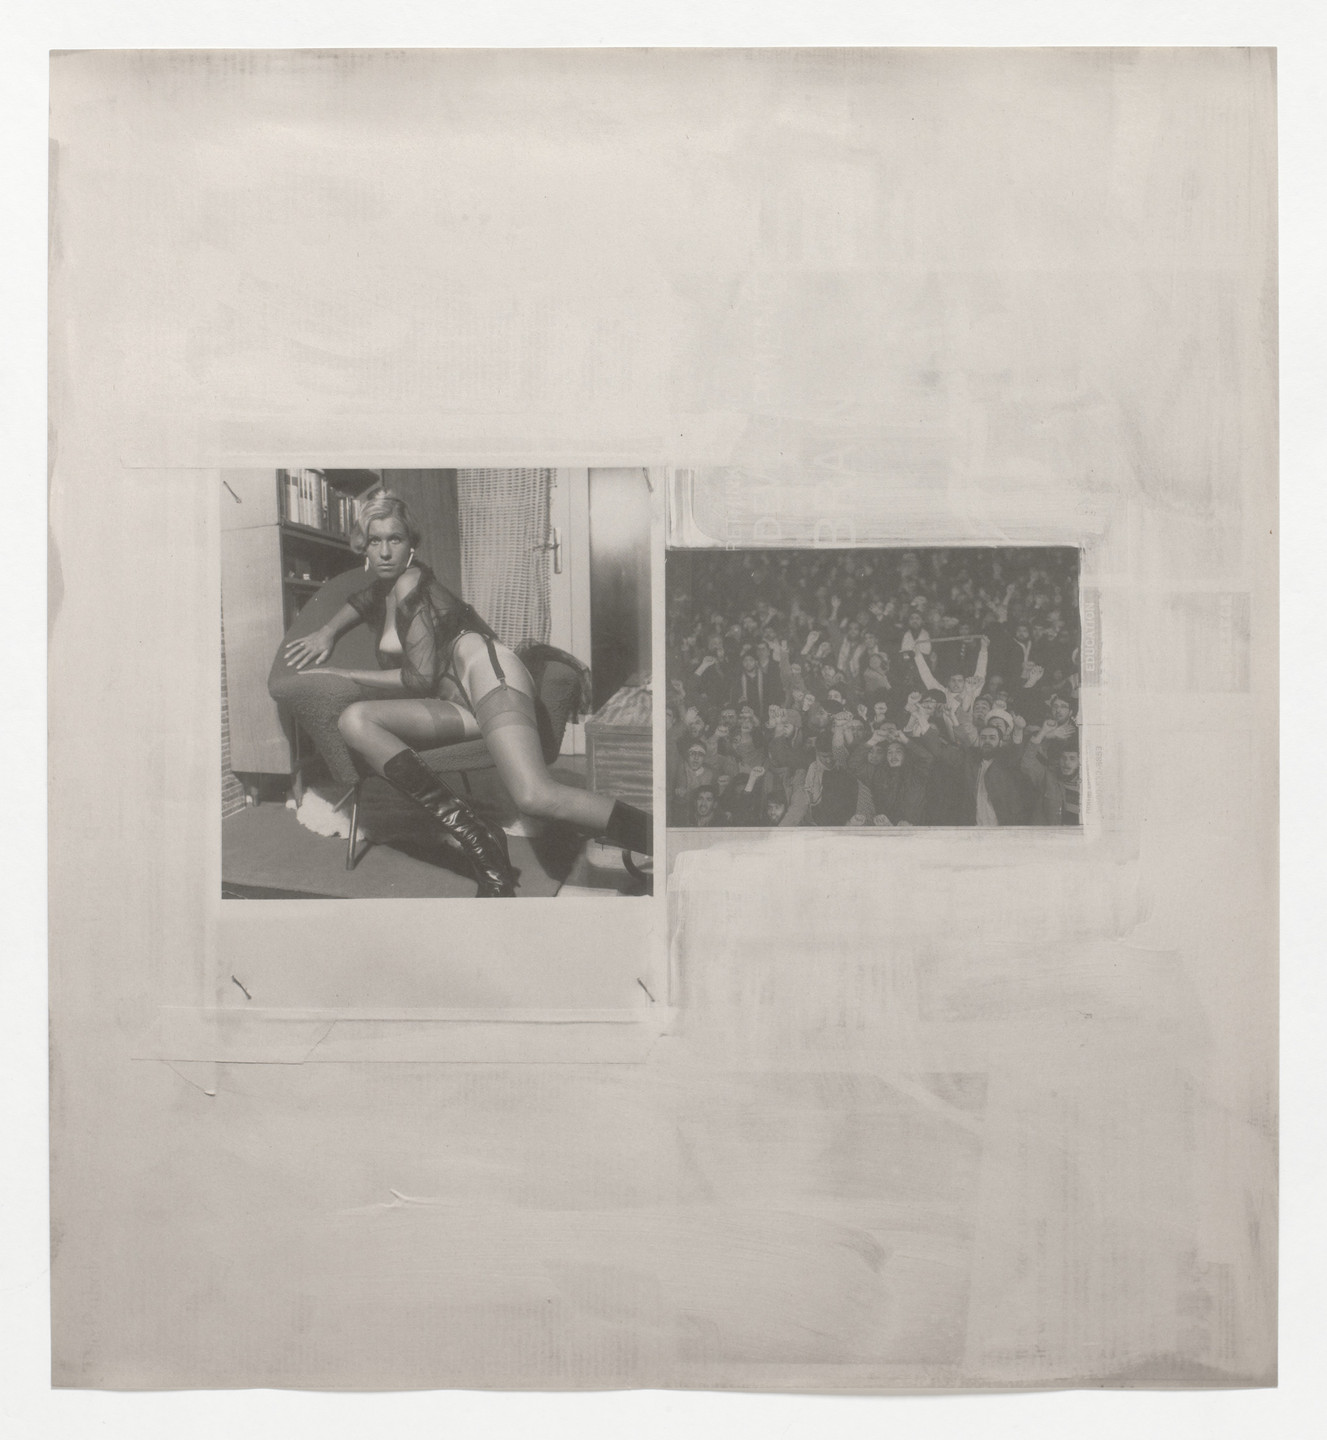 Richard Prince. Untitled (protest). 2012